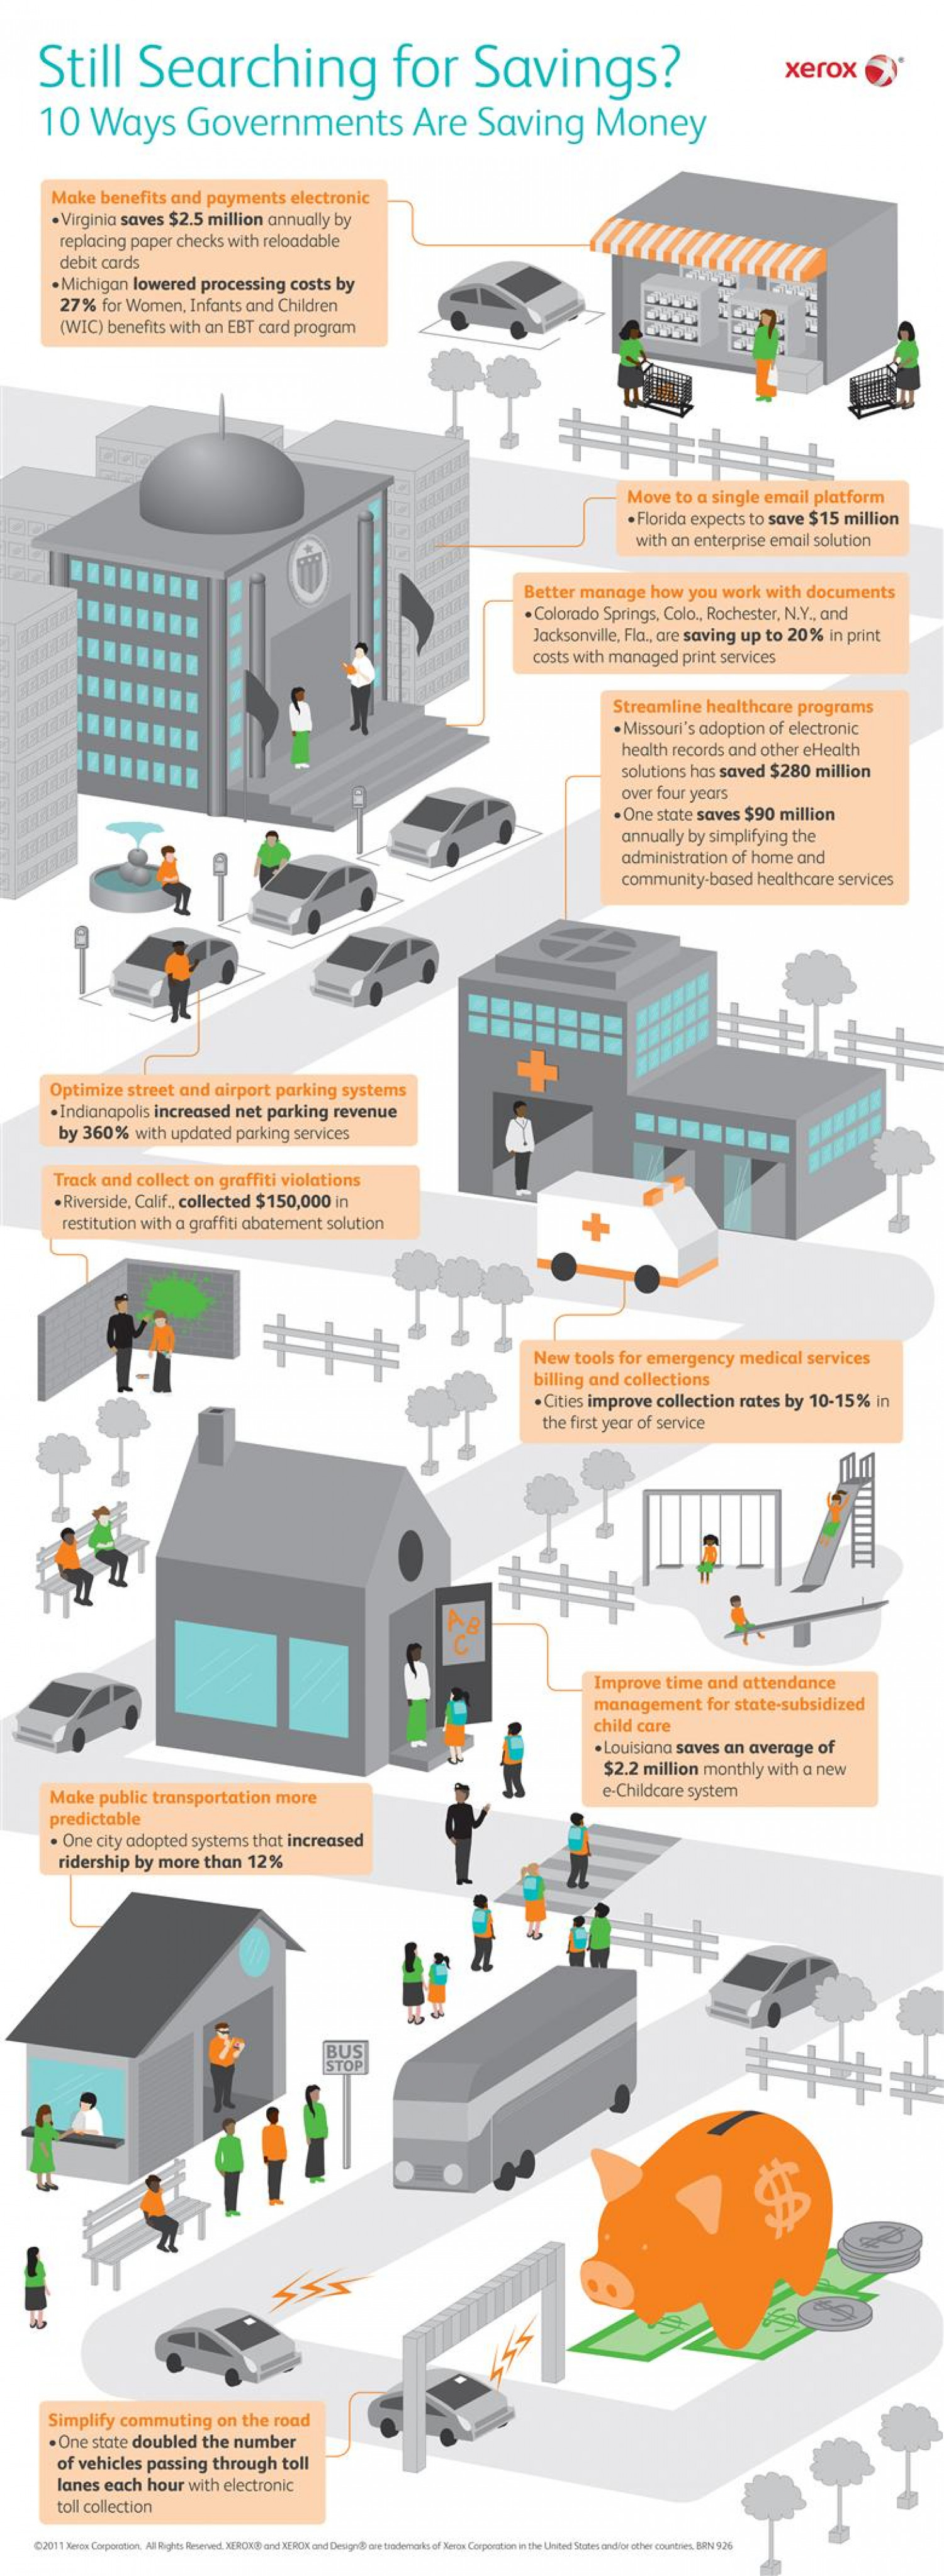 Still Searching for Savings? 10 Ways Governments Are Saving Money Infographic